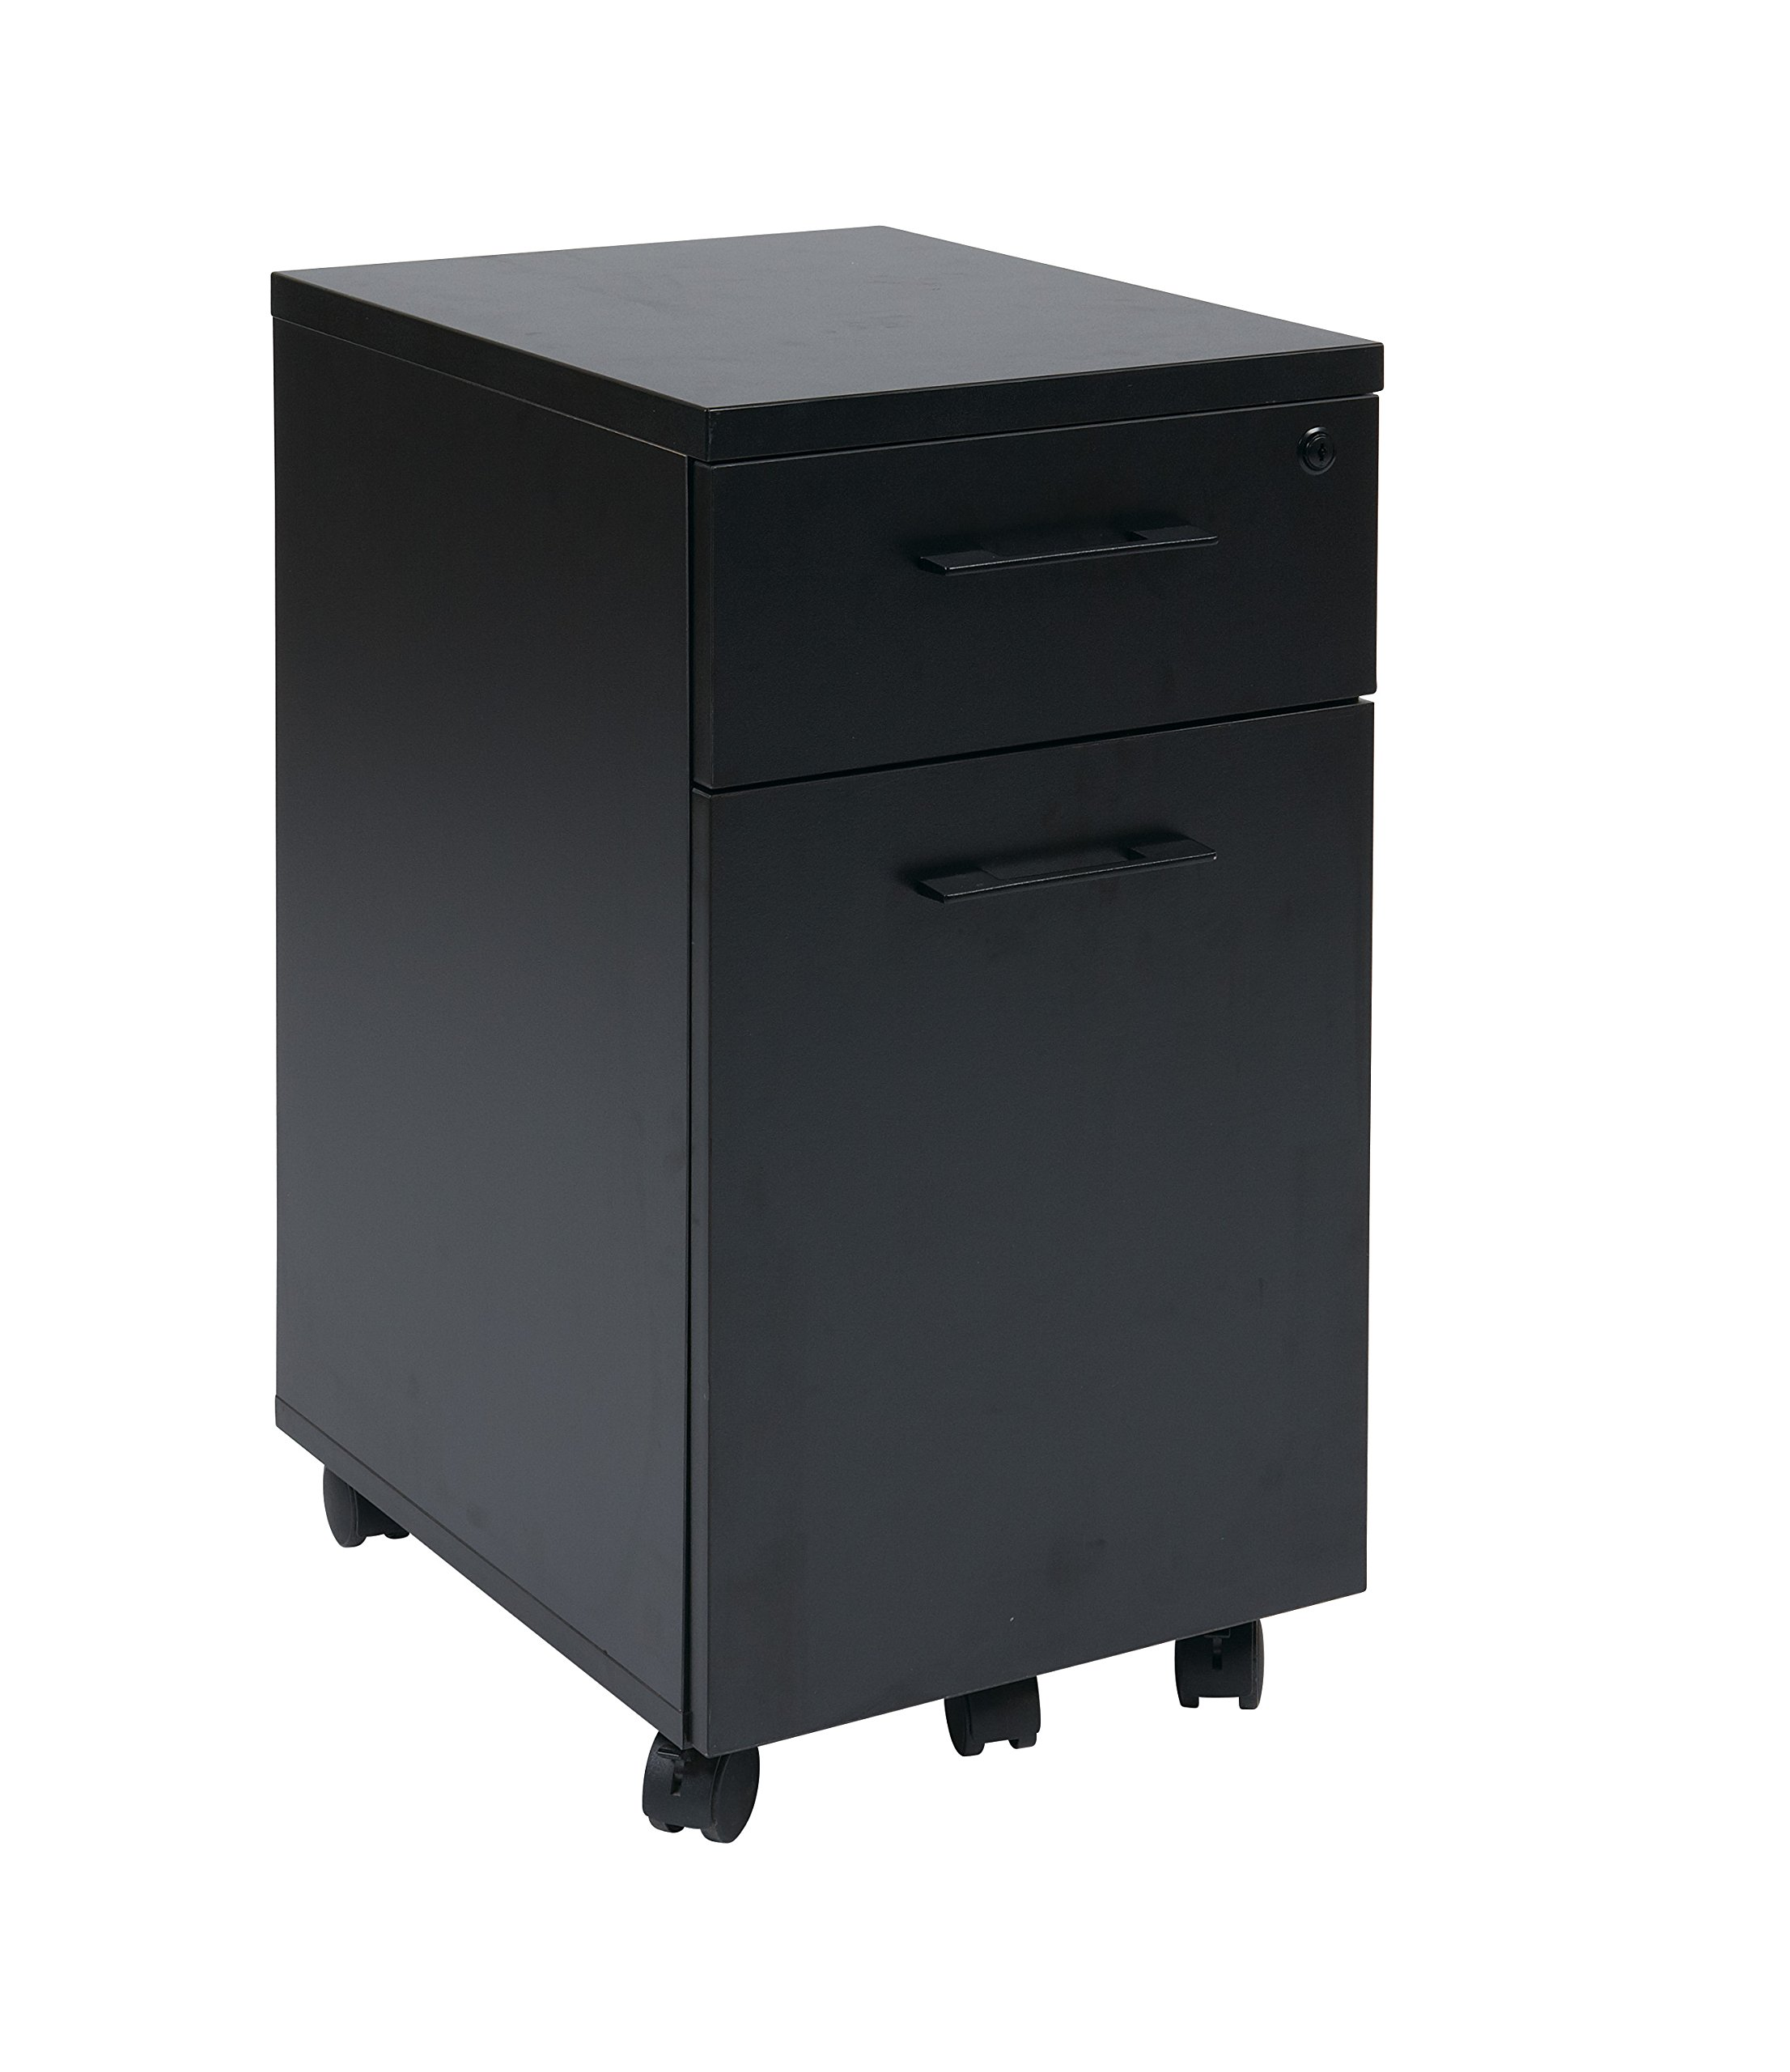 Pro-Line II / OSP Designs Prado Mobile File in Black with Hidden Drawer and Castors